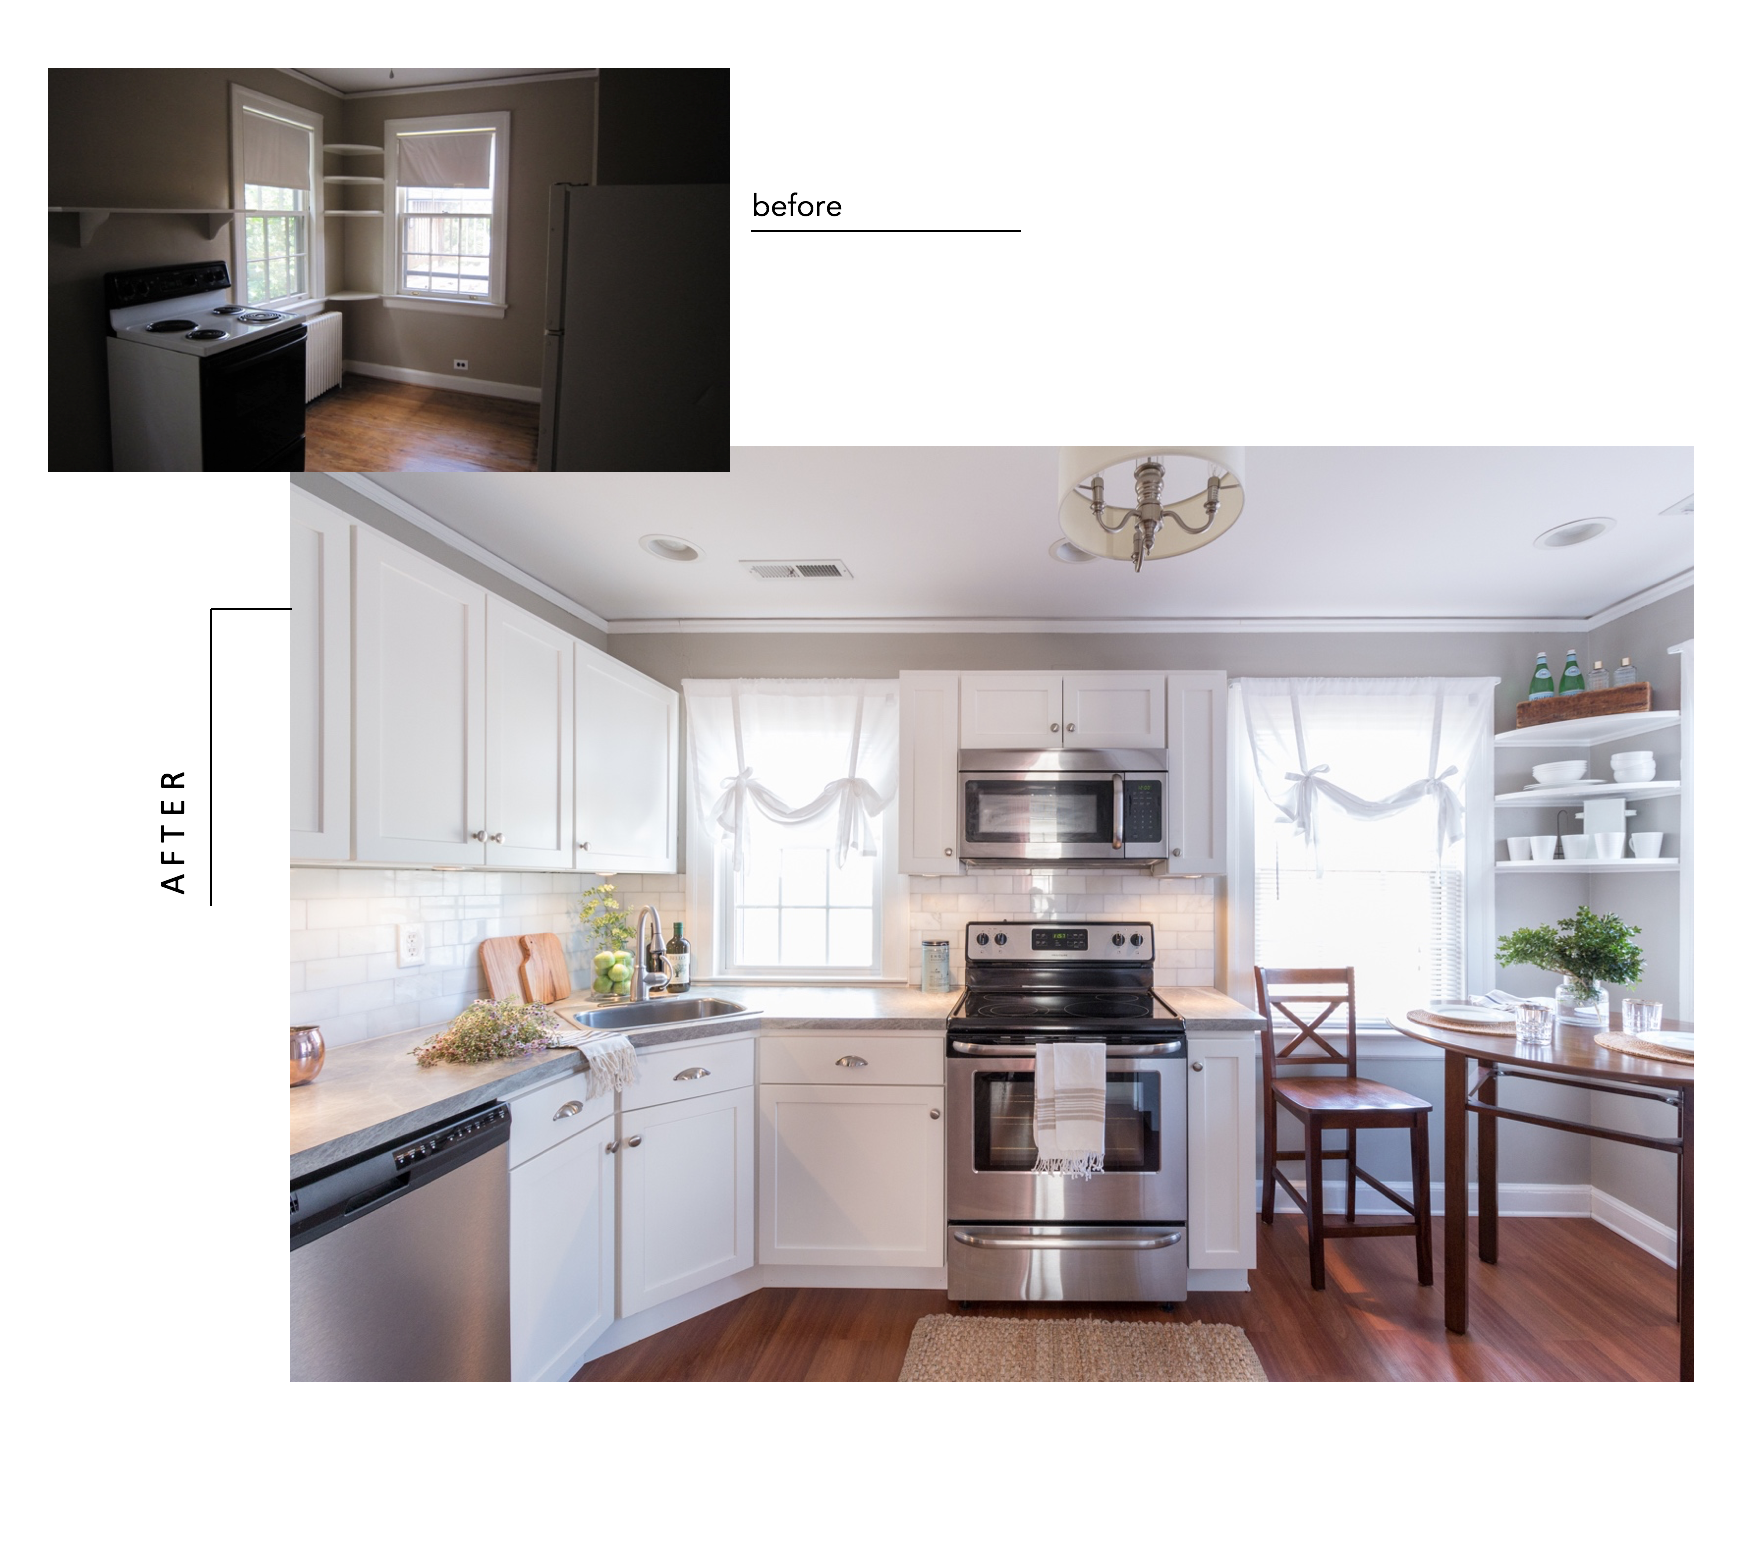 Formica Affordable Kitchen Renovation - Interior Design Lynchburg Virginia